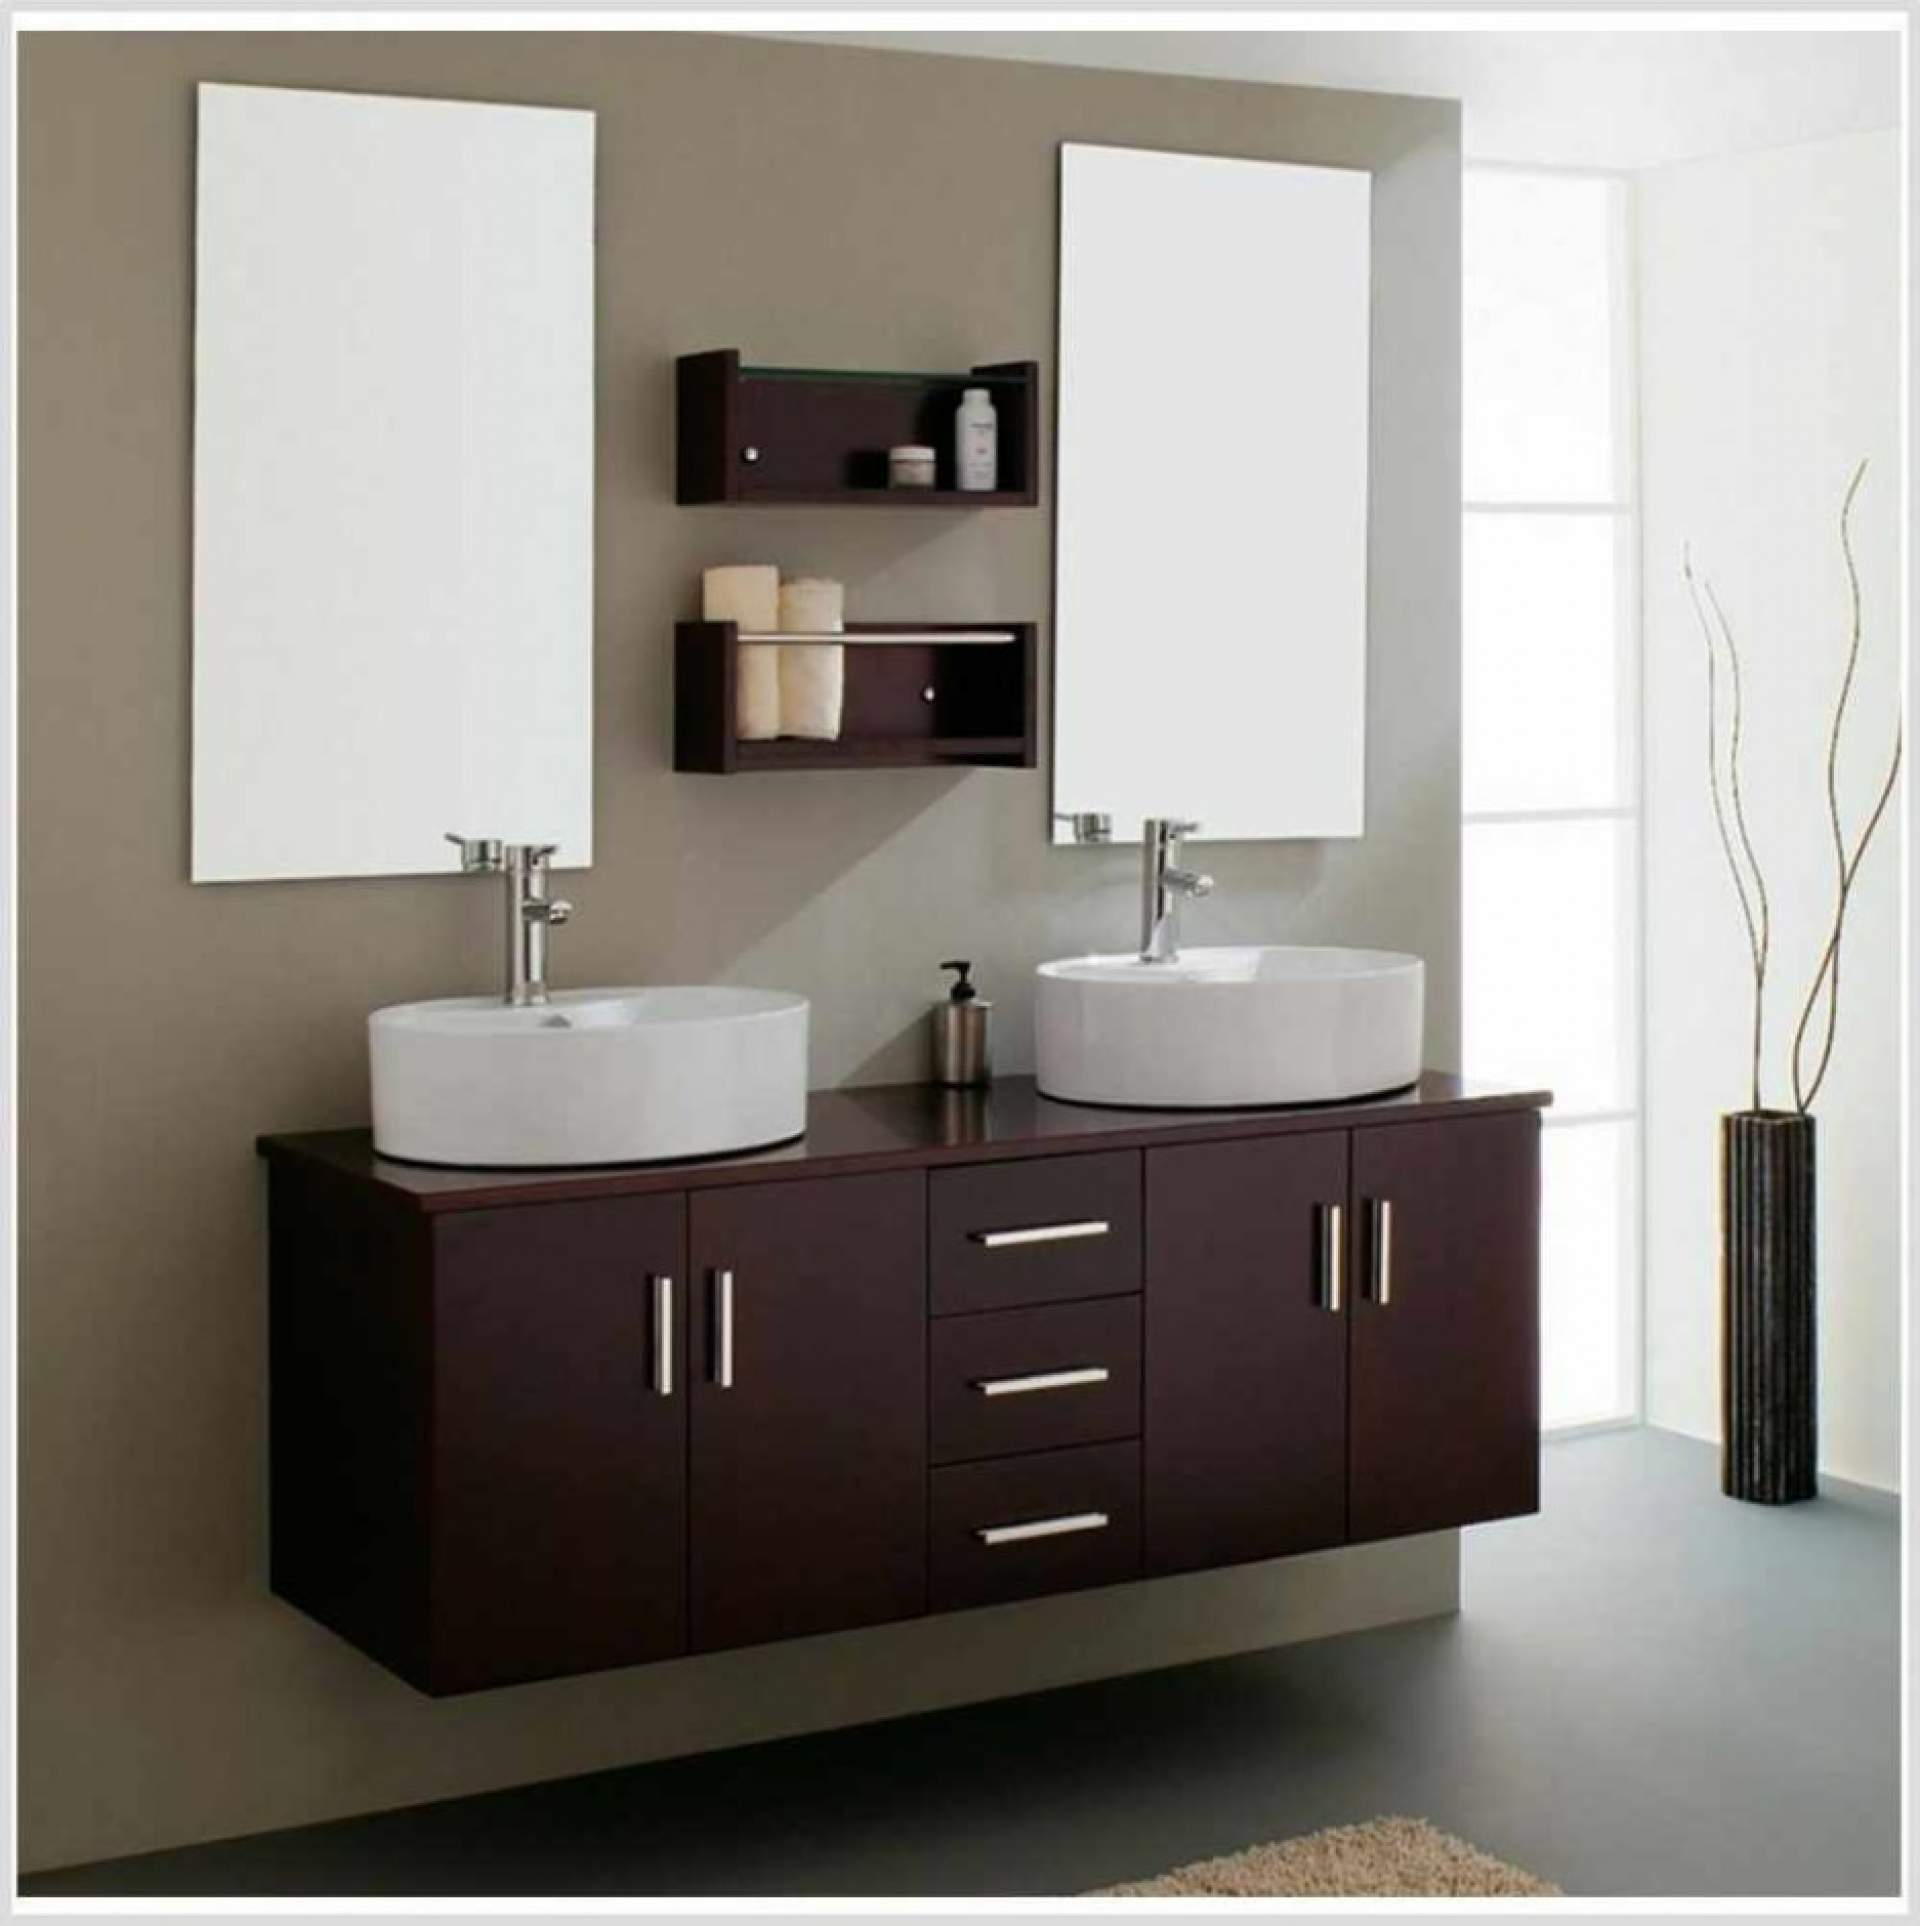 Interesting Hanging Cabinet Using Modern Bathroom Sinks and Faucets